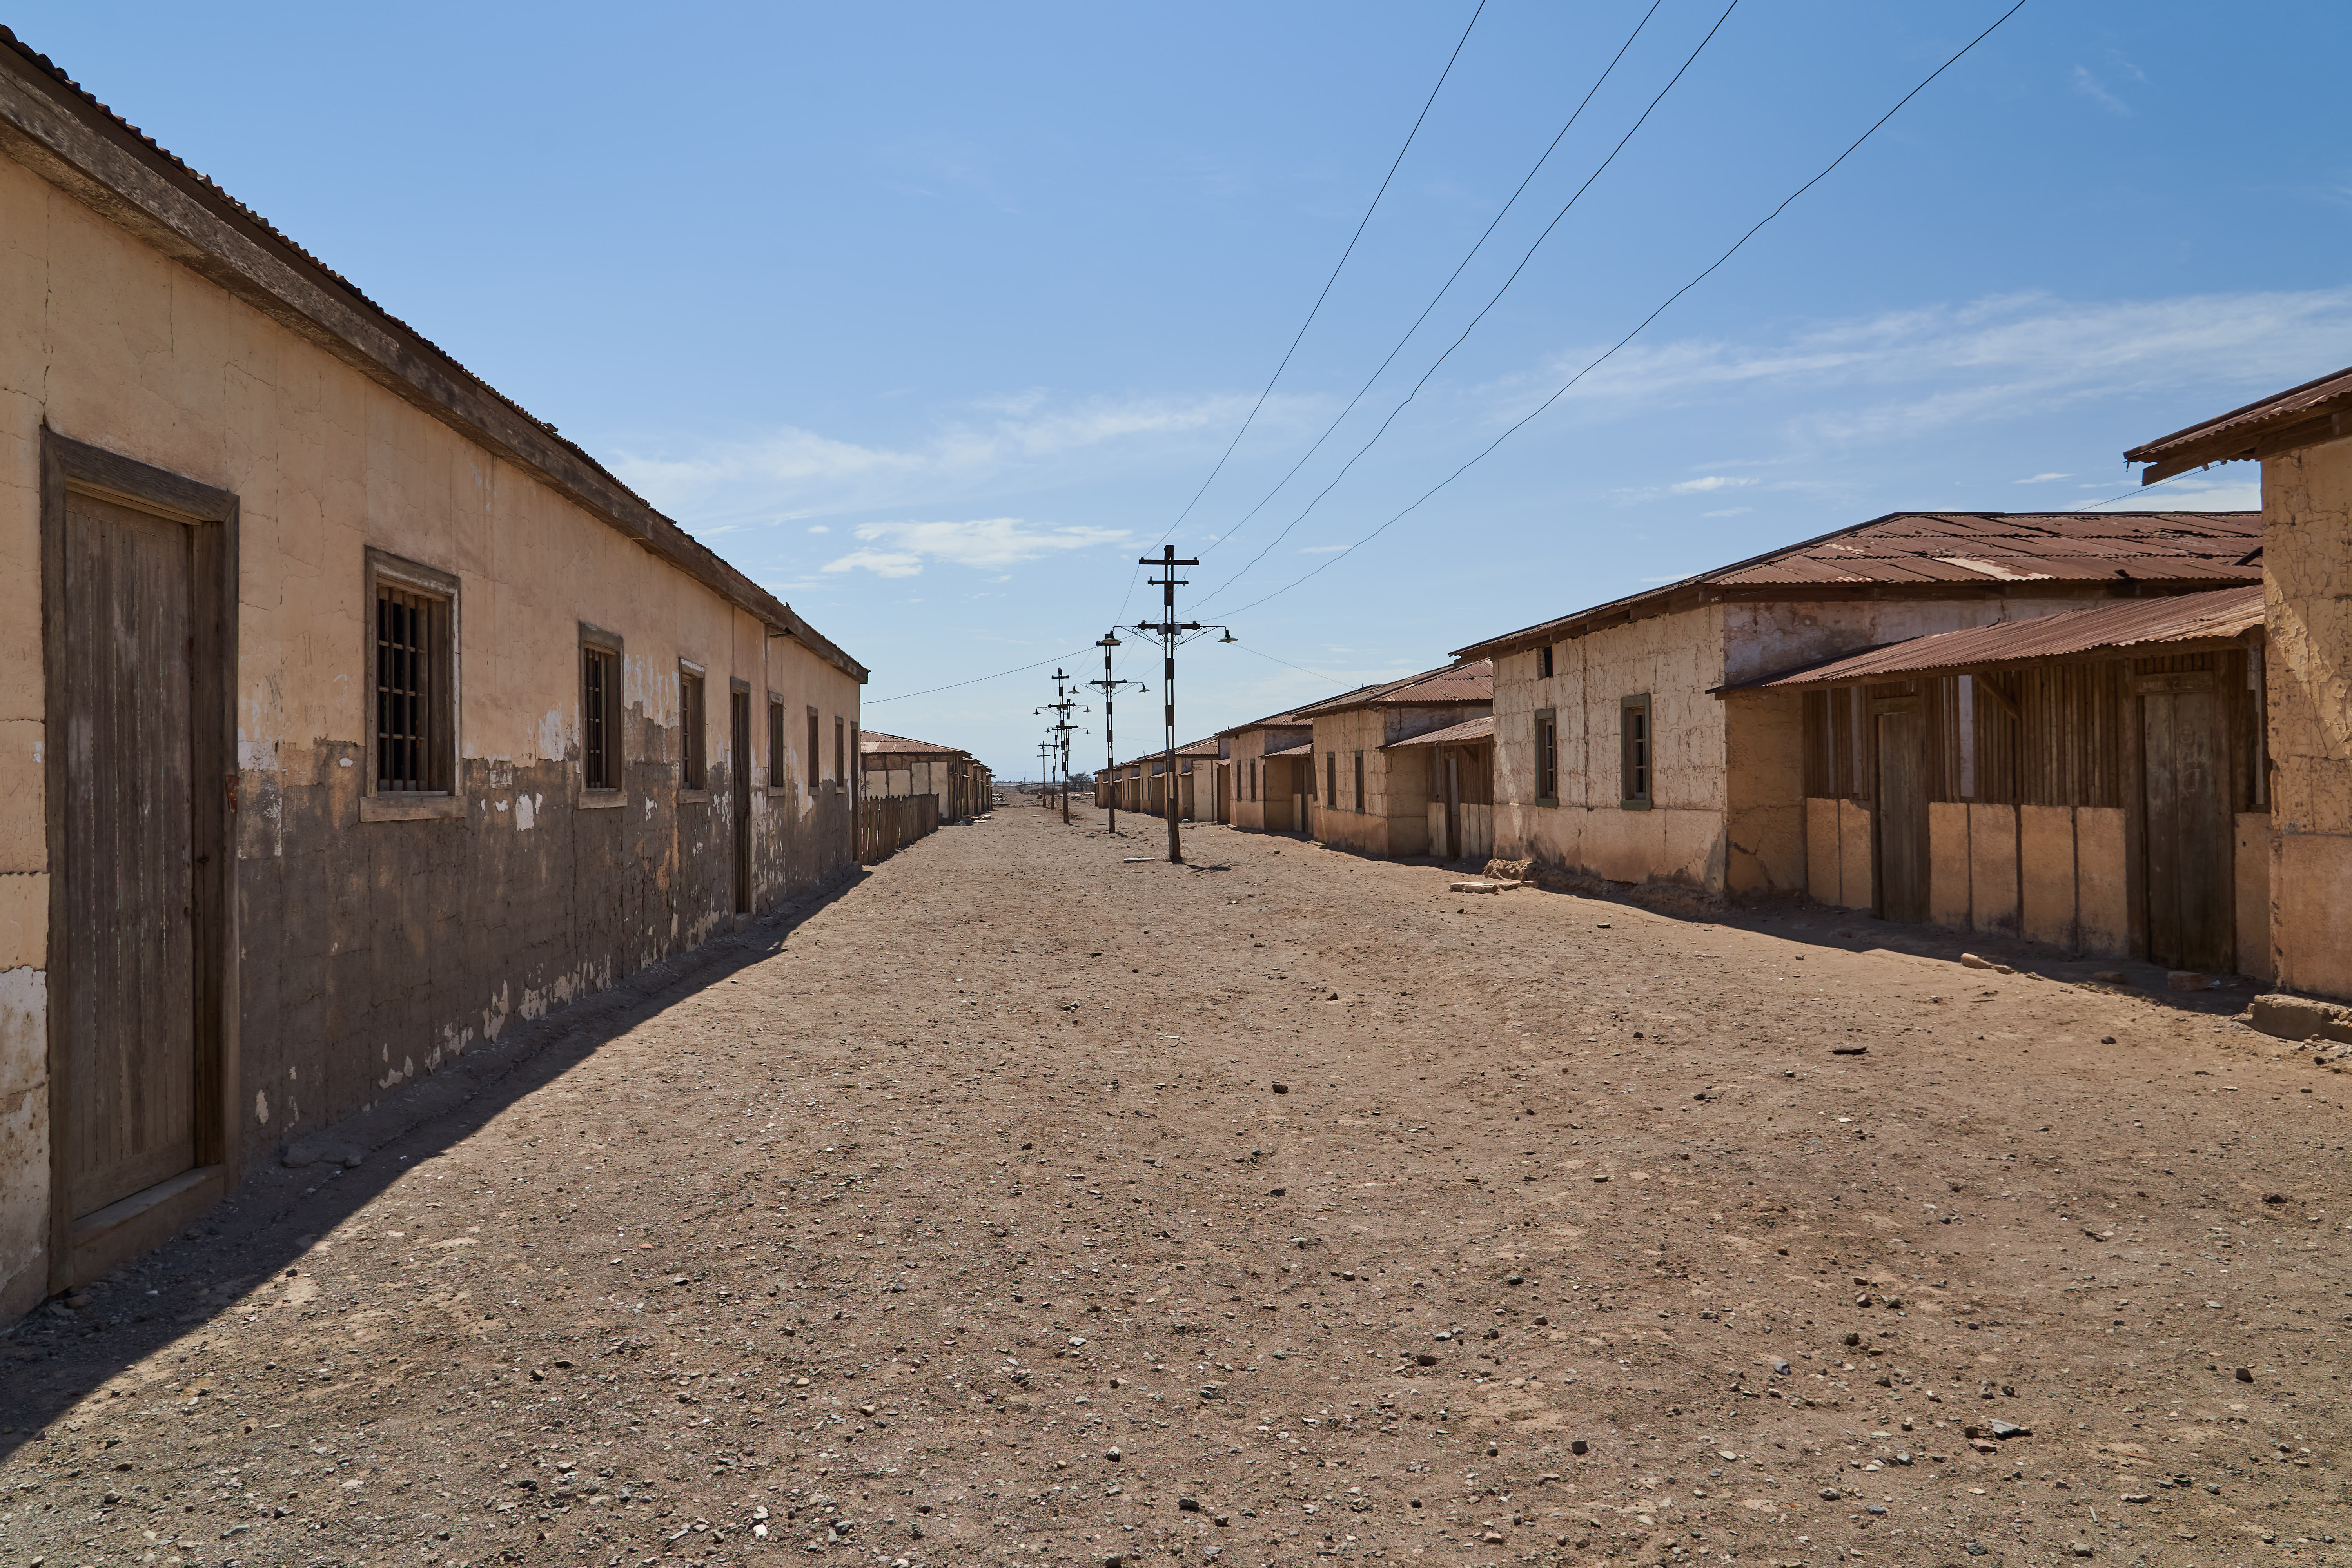 Santiago Humberstone, Chile 2019